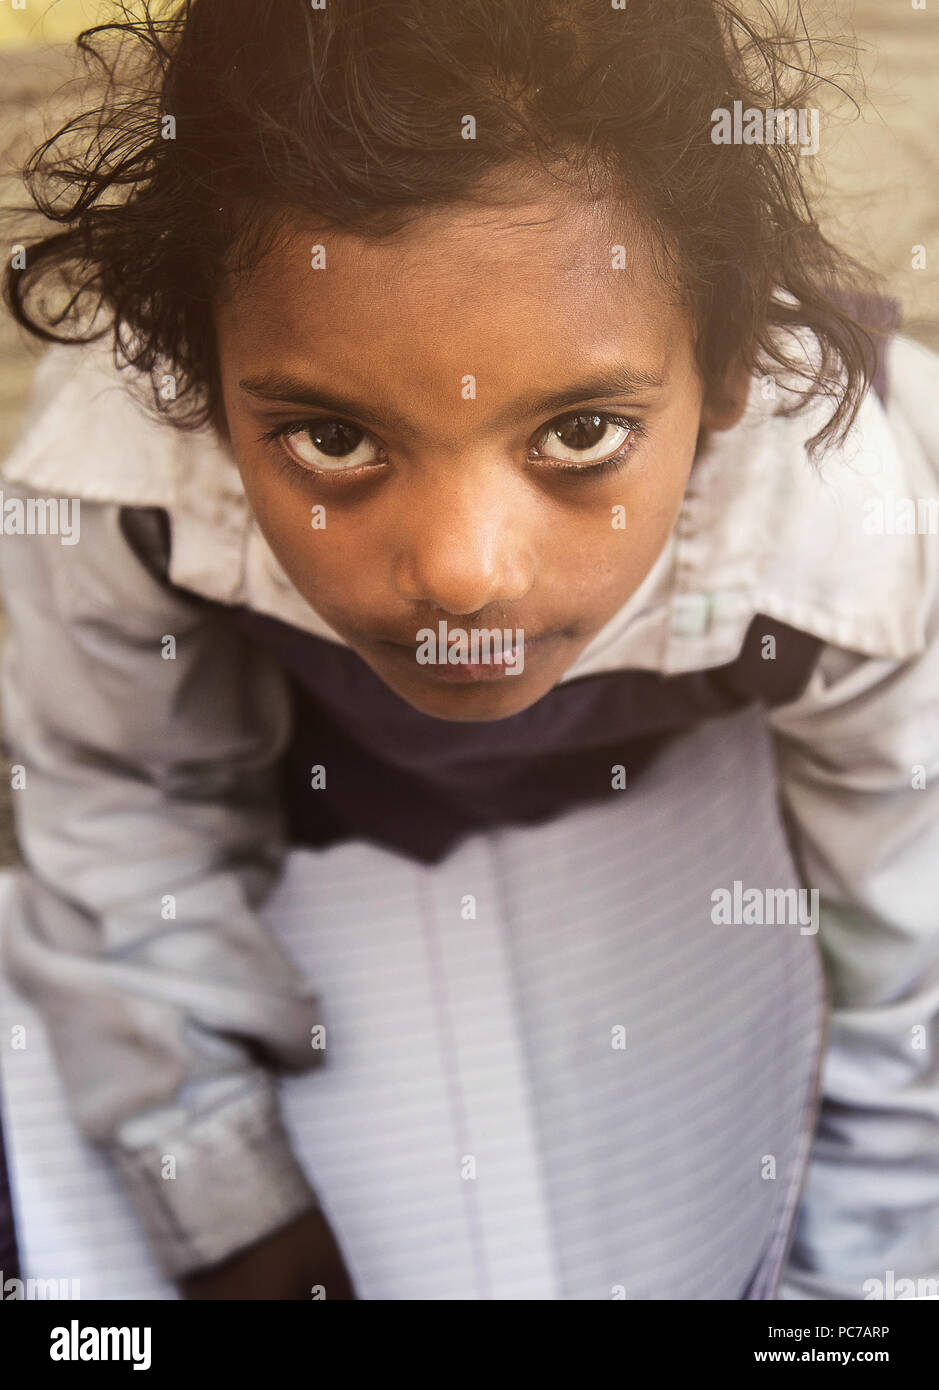 Village school girl portrait in school uniform. She is sitting on mat of her classroom floor holding school notebook in her lap for class assignments. Stock Photo